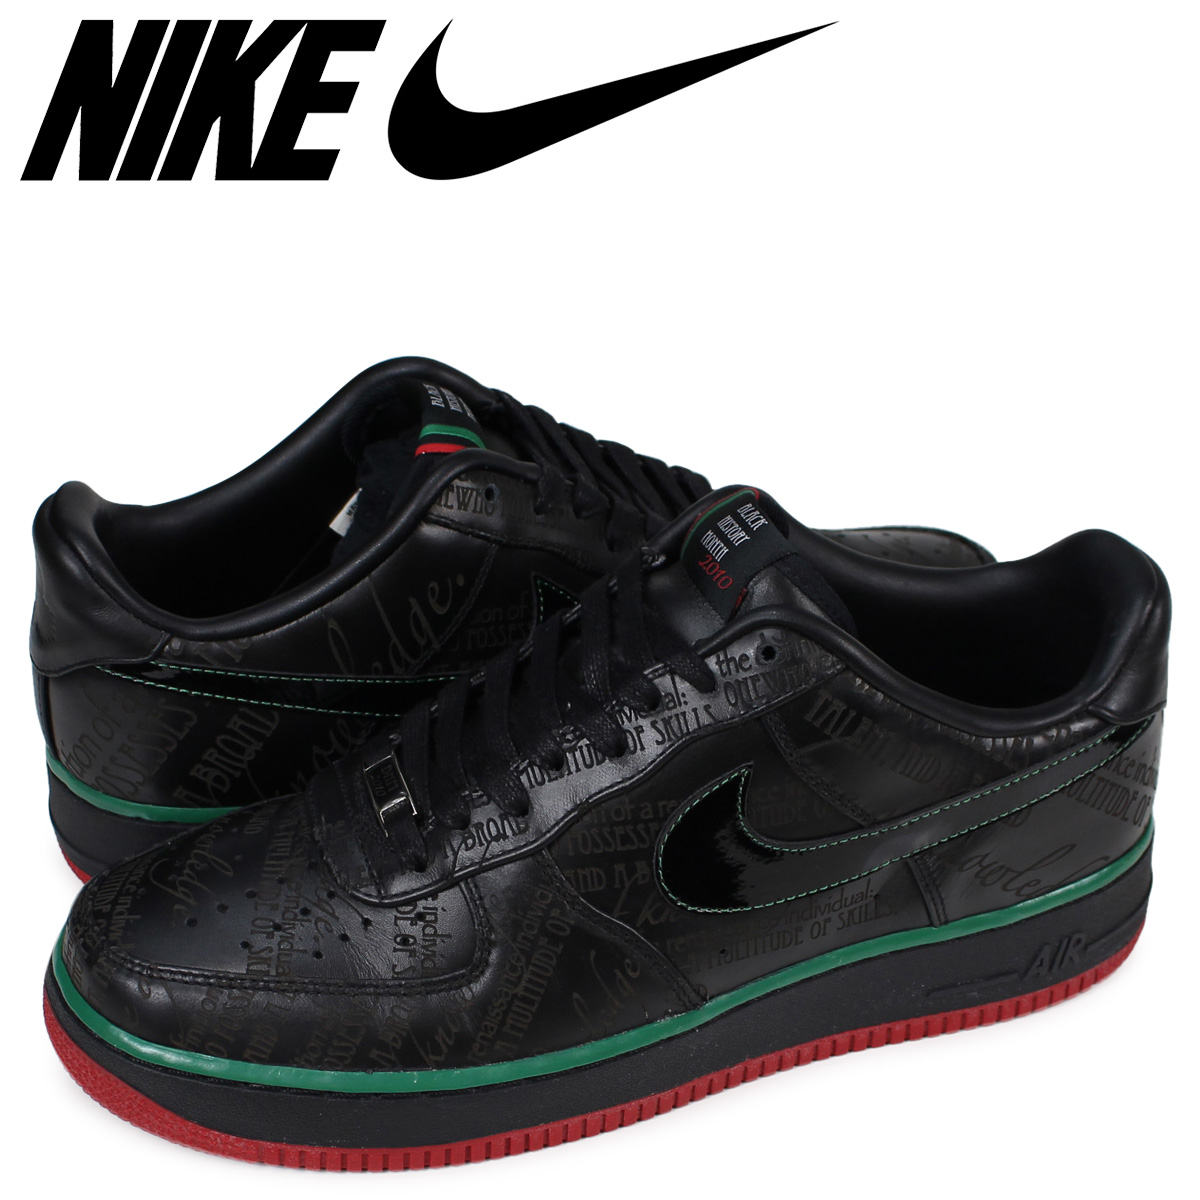 size 40 978cc bf11b NIKE AIR FORCE 1 LOW PREMIUM BLACK HISTORY Nike air force 1 sneakers  318,775-008 ...